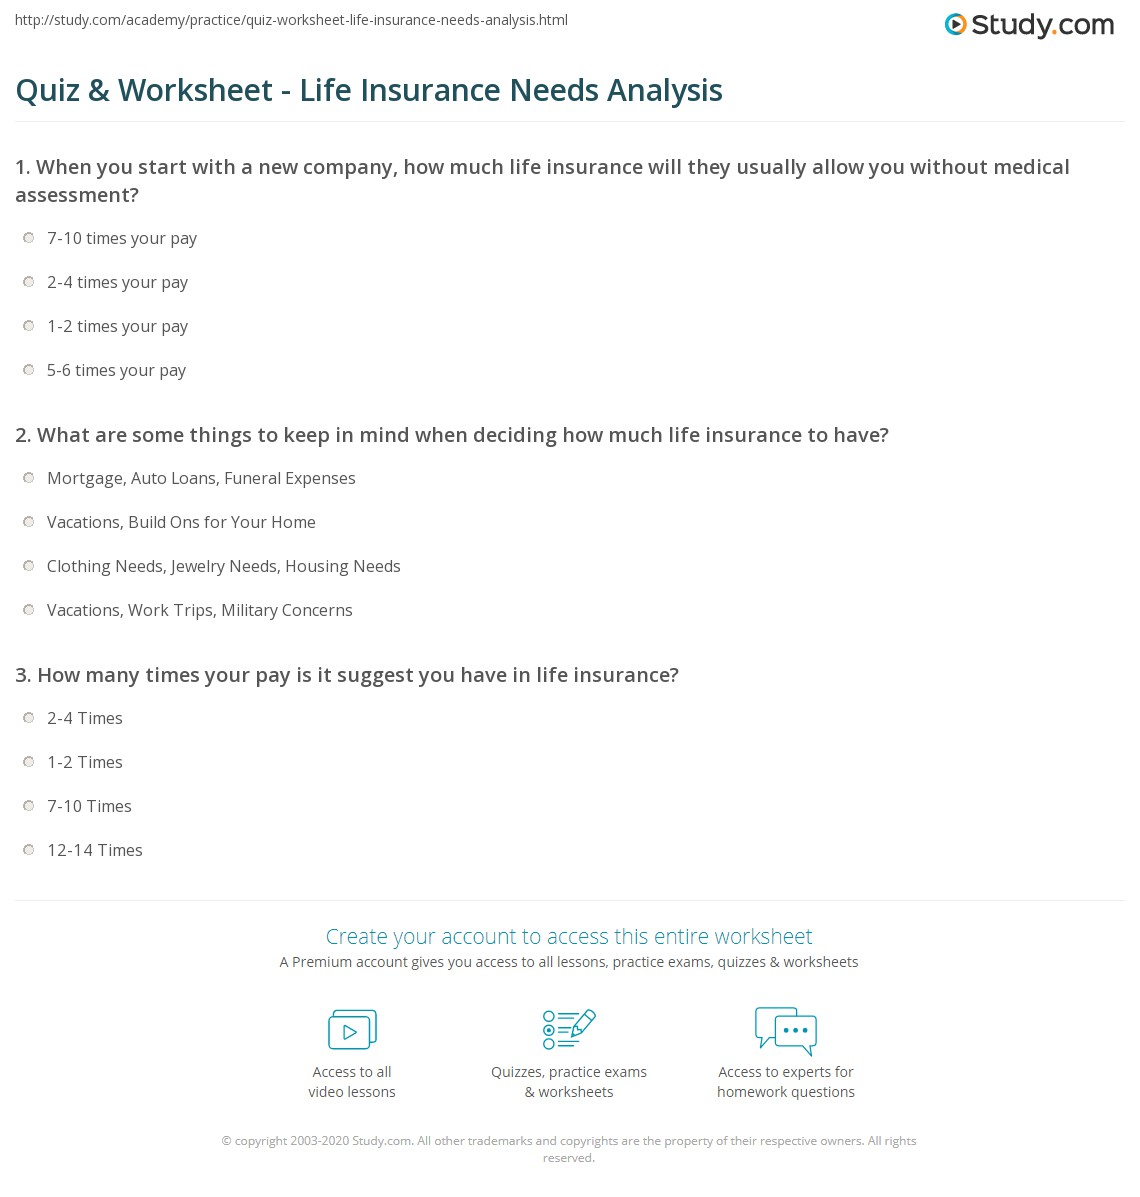 Quiz & Worksheet - Life Insurance Needs Analysis | Study.com